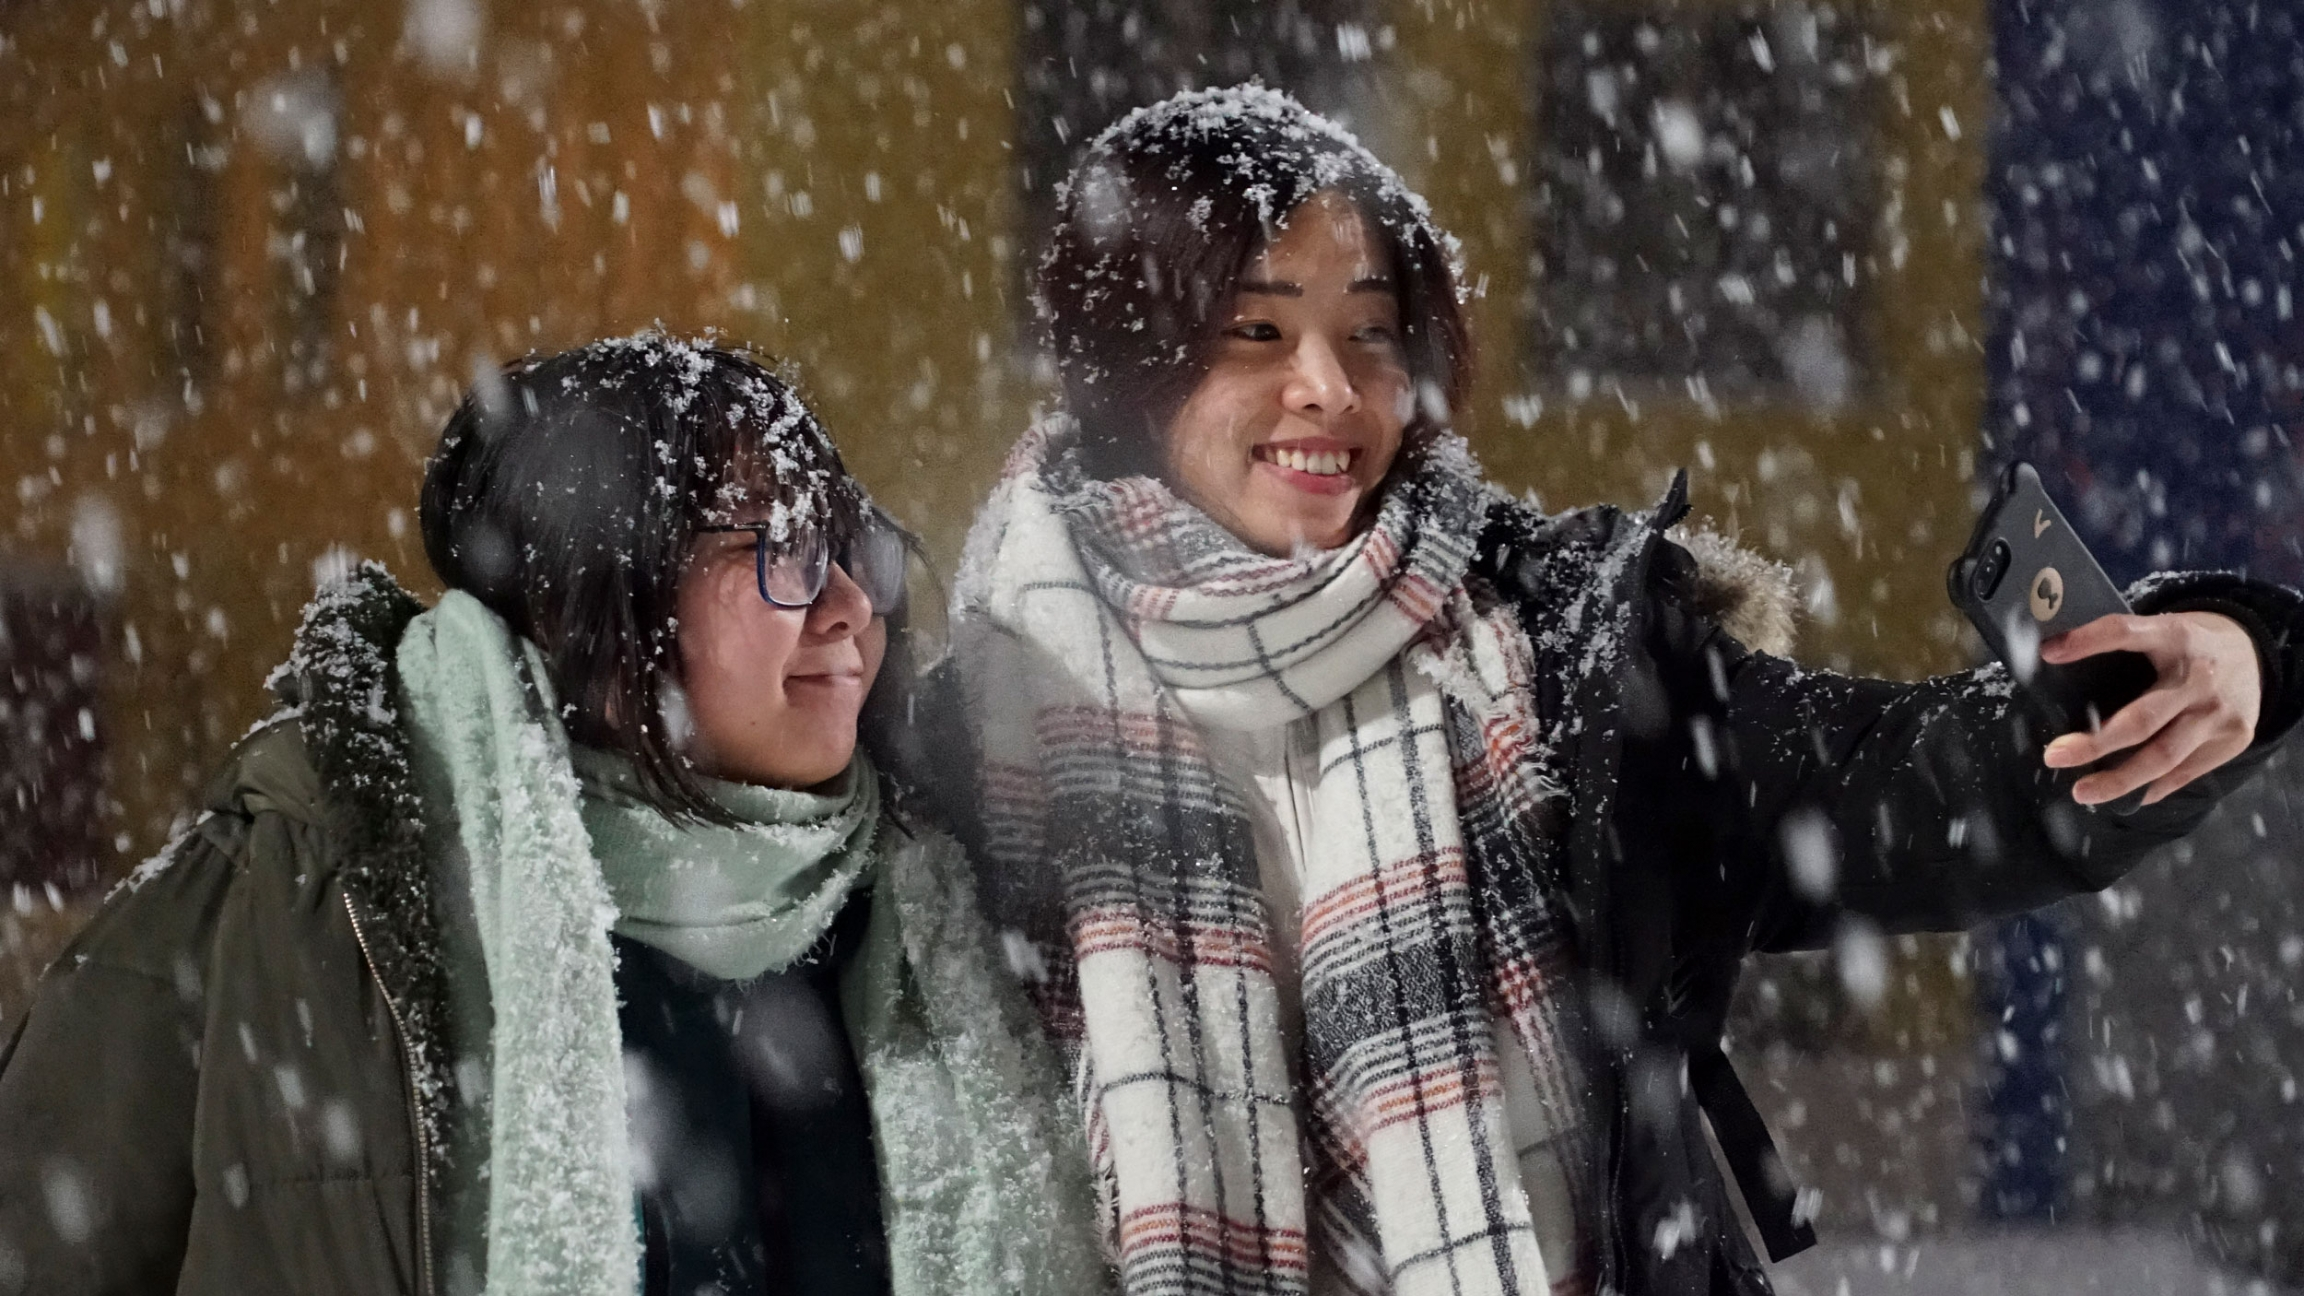 Tourists from China take a selfie as large snow flakes are falling all around them.